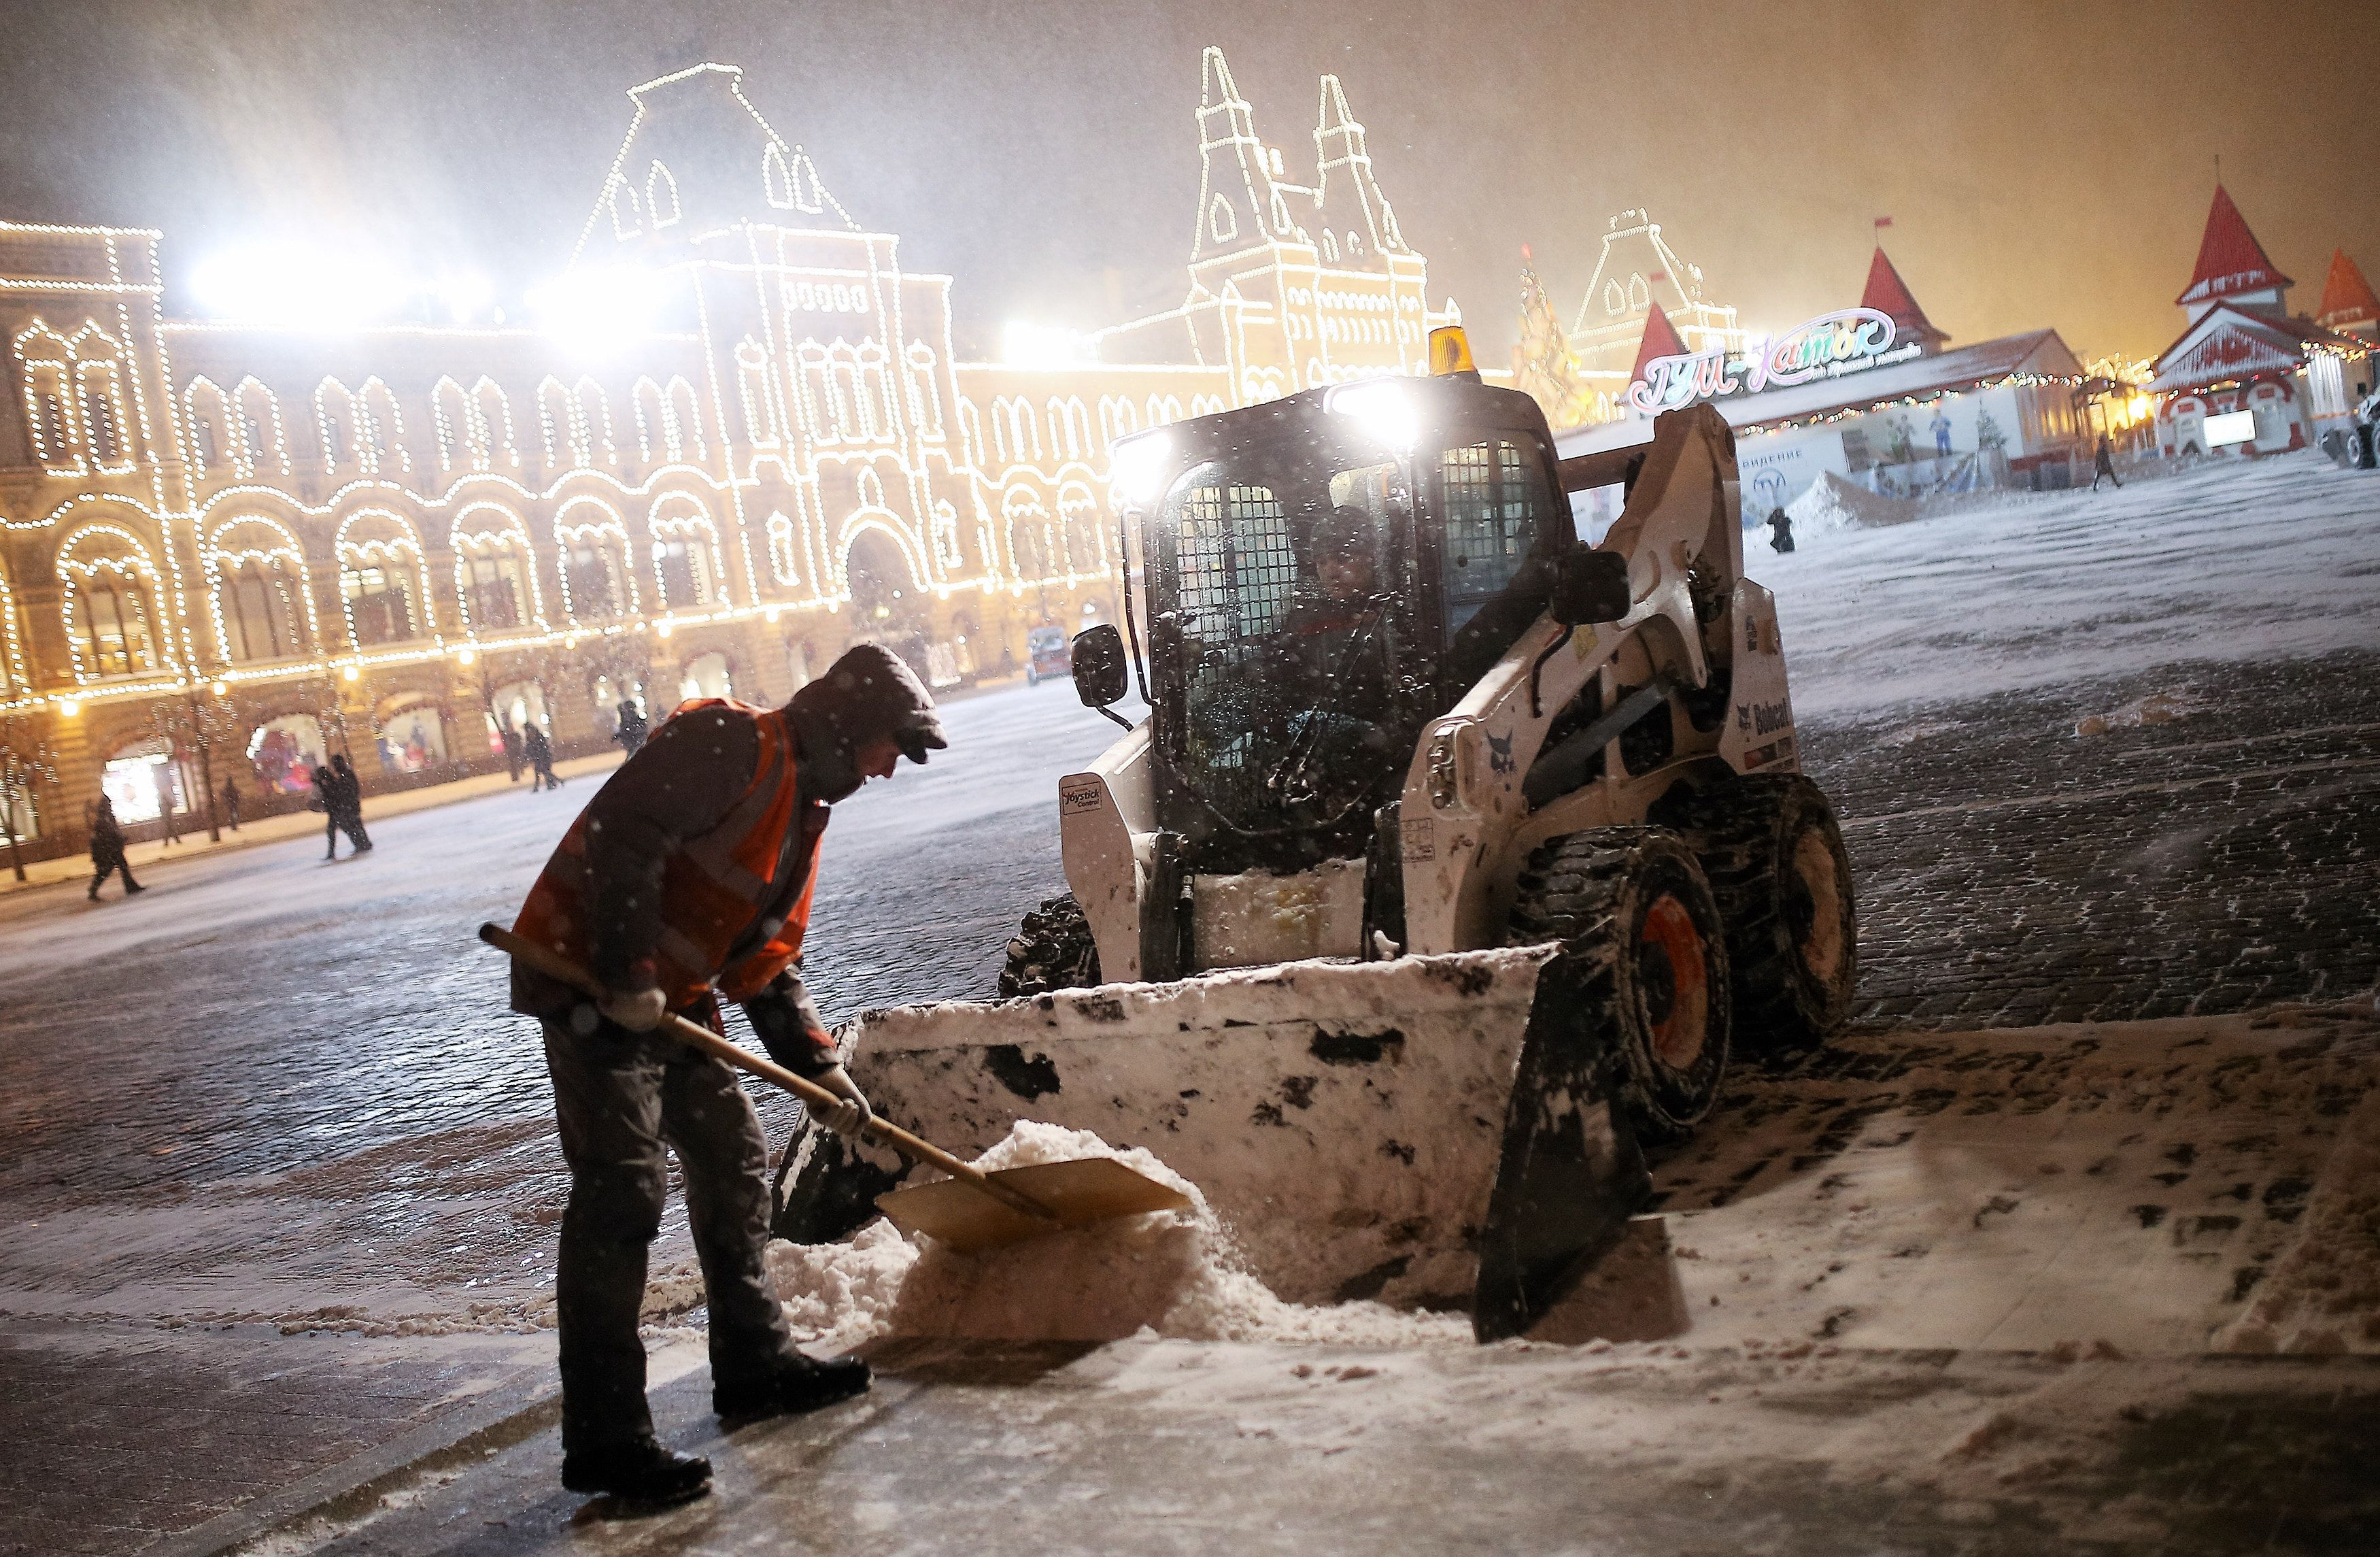 MOSCOW, RUSSIA - JANUARY 12:  Snowplows clean the Red Square on January 12, 2016 in Moscow, Russia. A strong atmospheric front swept through Moscow bringing a large amount of snow to the city. (Photo by Kristina Kormilitsyna/Kommersant Photo via Getty Images)